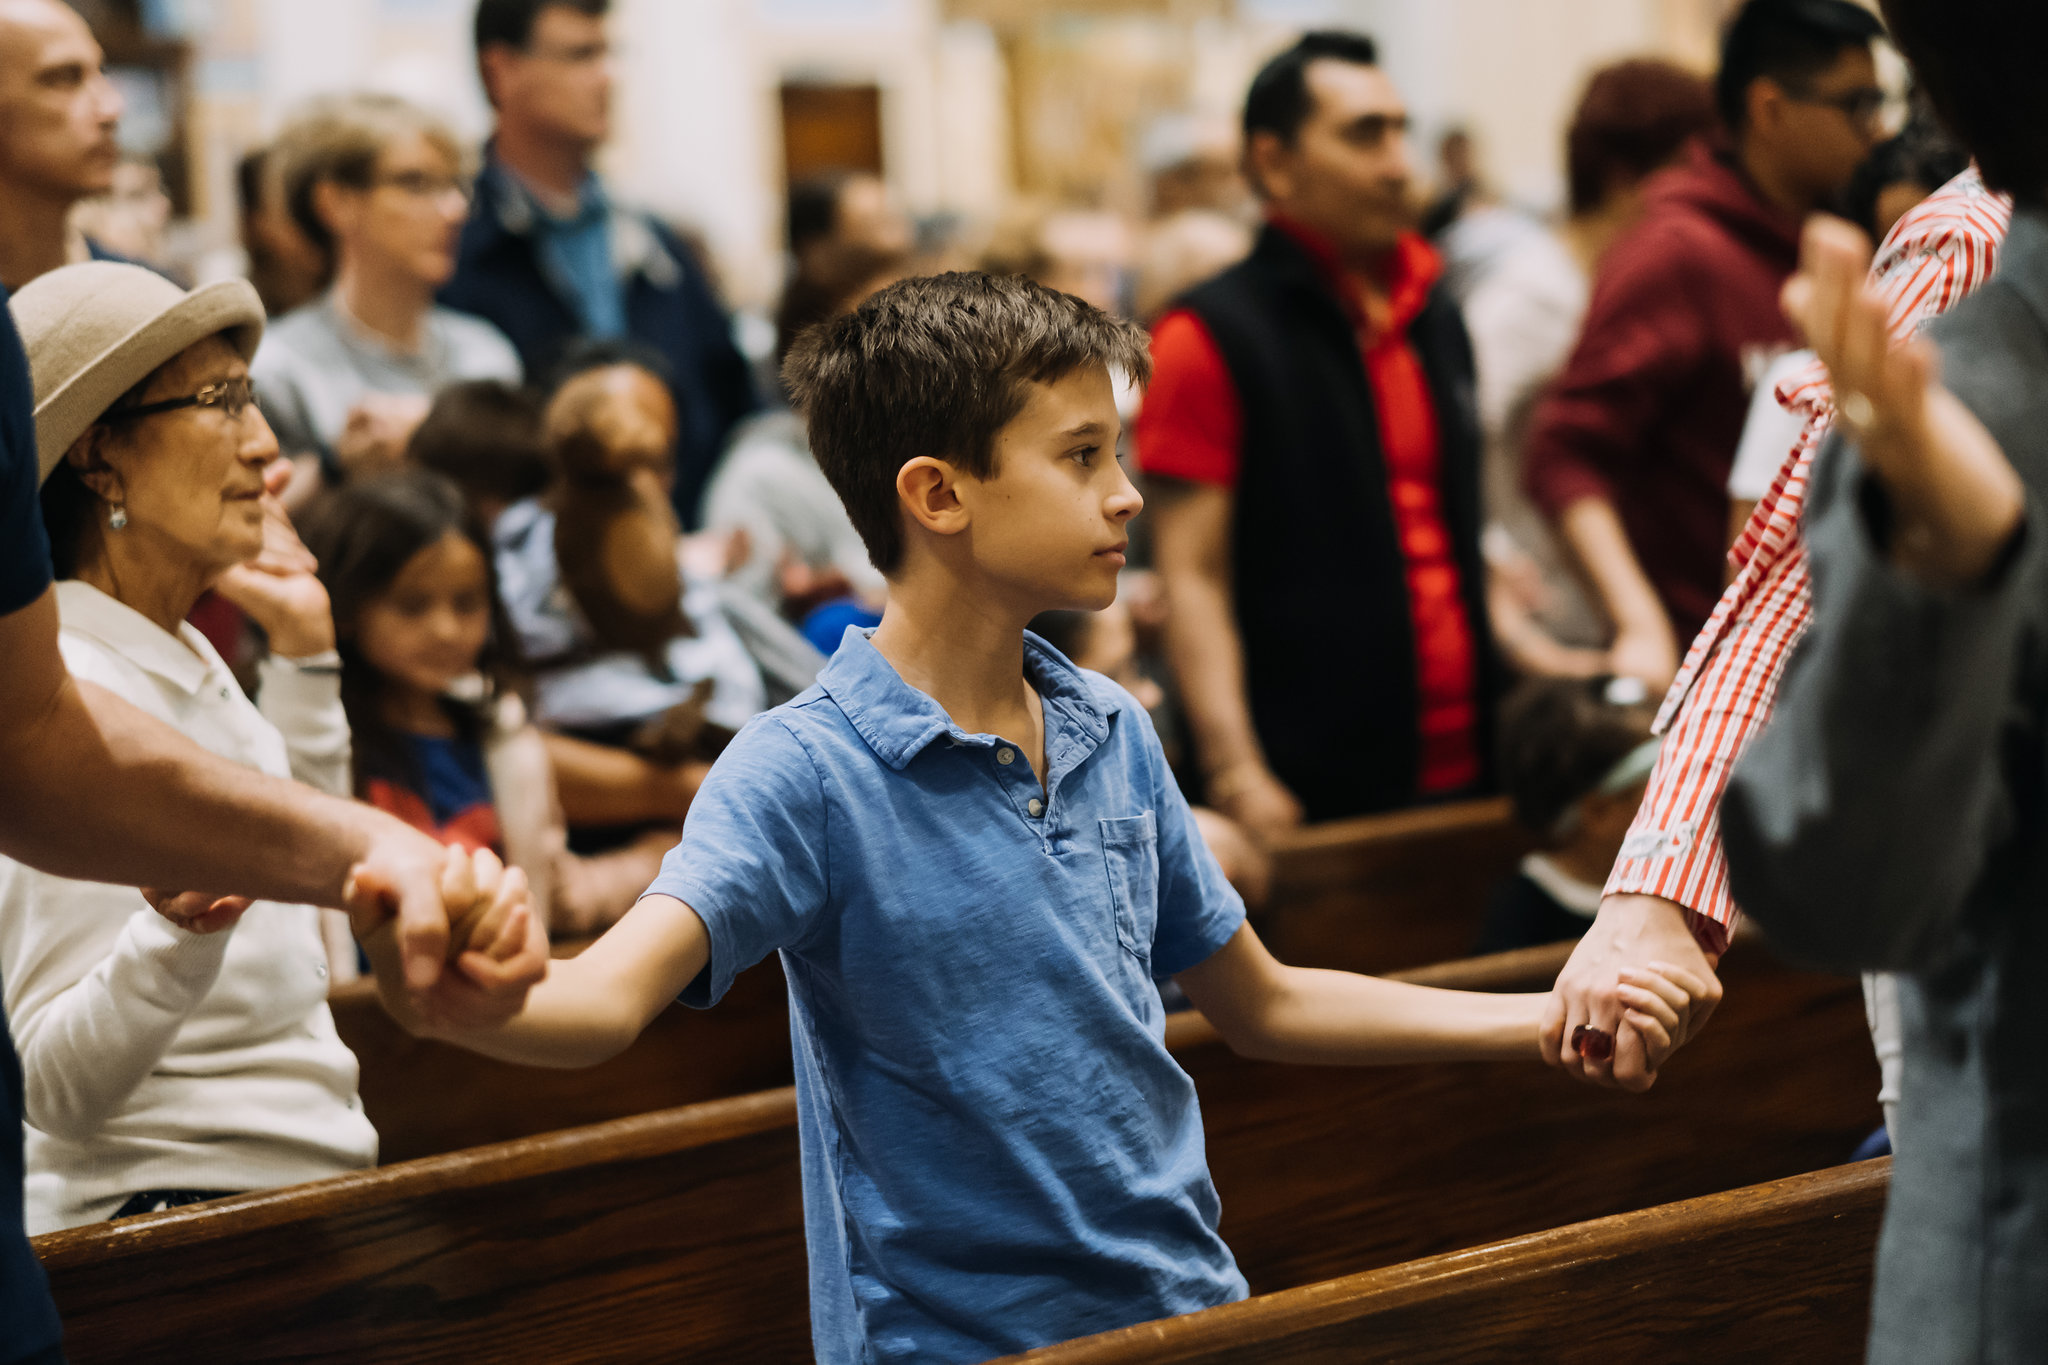 religious-education-sunday-school-child-youth-young-kids-community-prayer-st-francis-de-sales-church-new-york-city.jpg